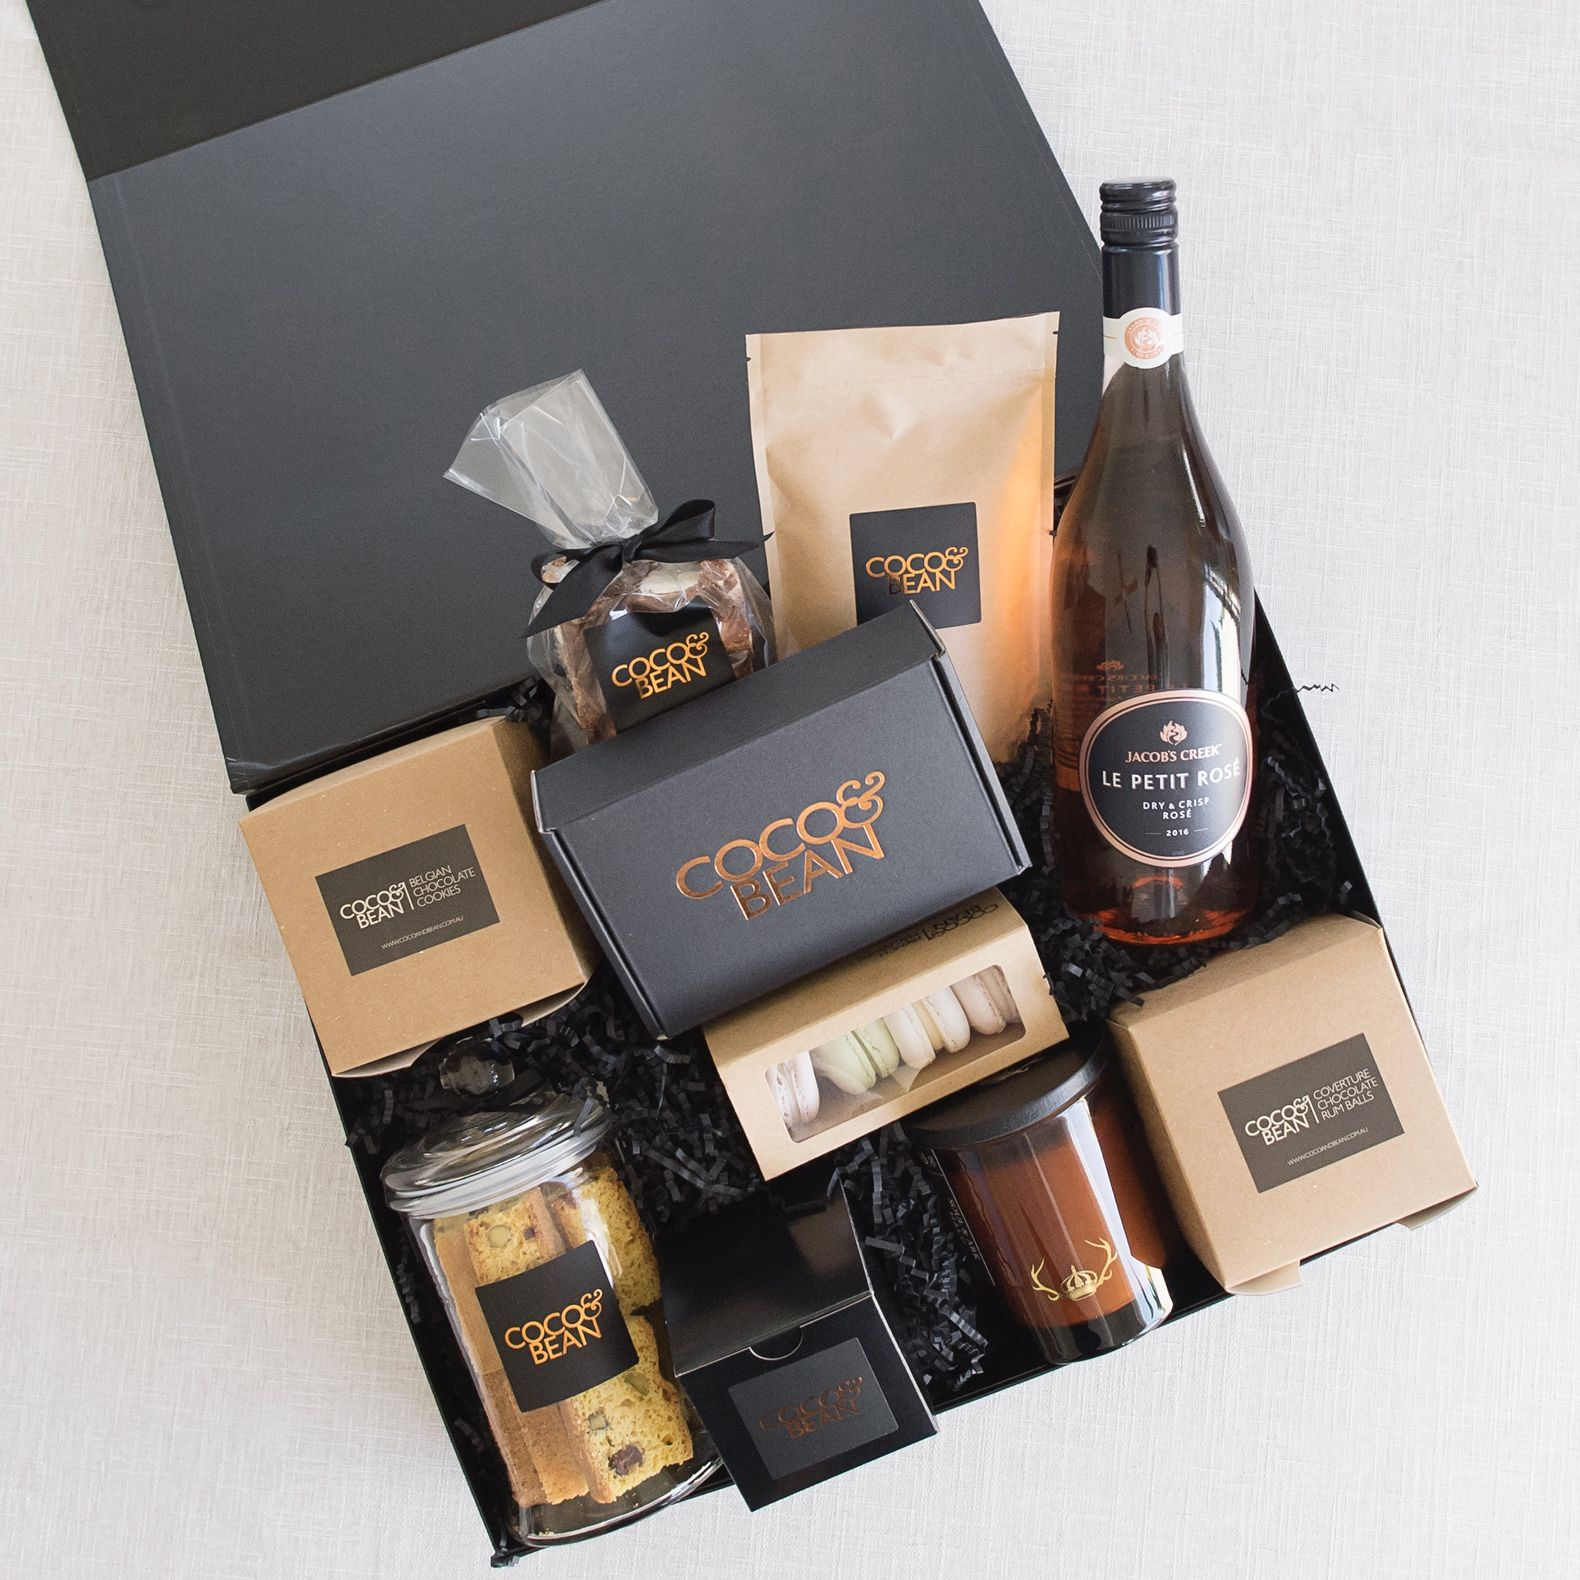 Entertainer Gift Hamper Gourmet Gifts Delivered Free Australia Gift Hampers Corporate Christmas Gifts Corporate Gifts